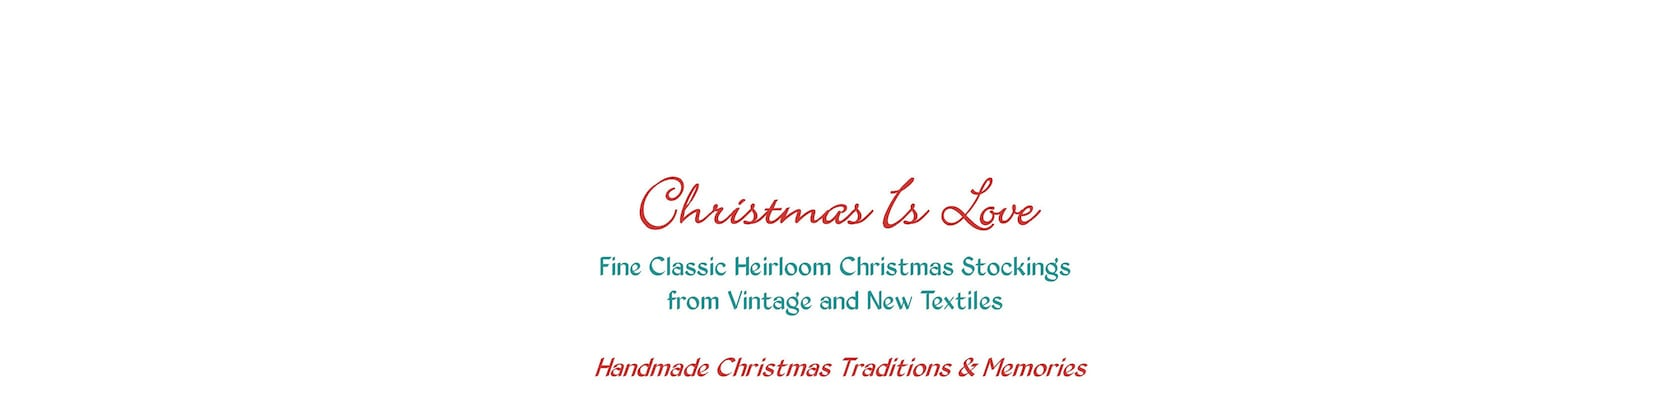 Finely Handcrafted Heirloom Christmas Stockings By